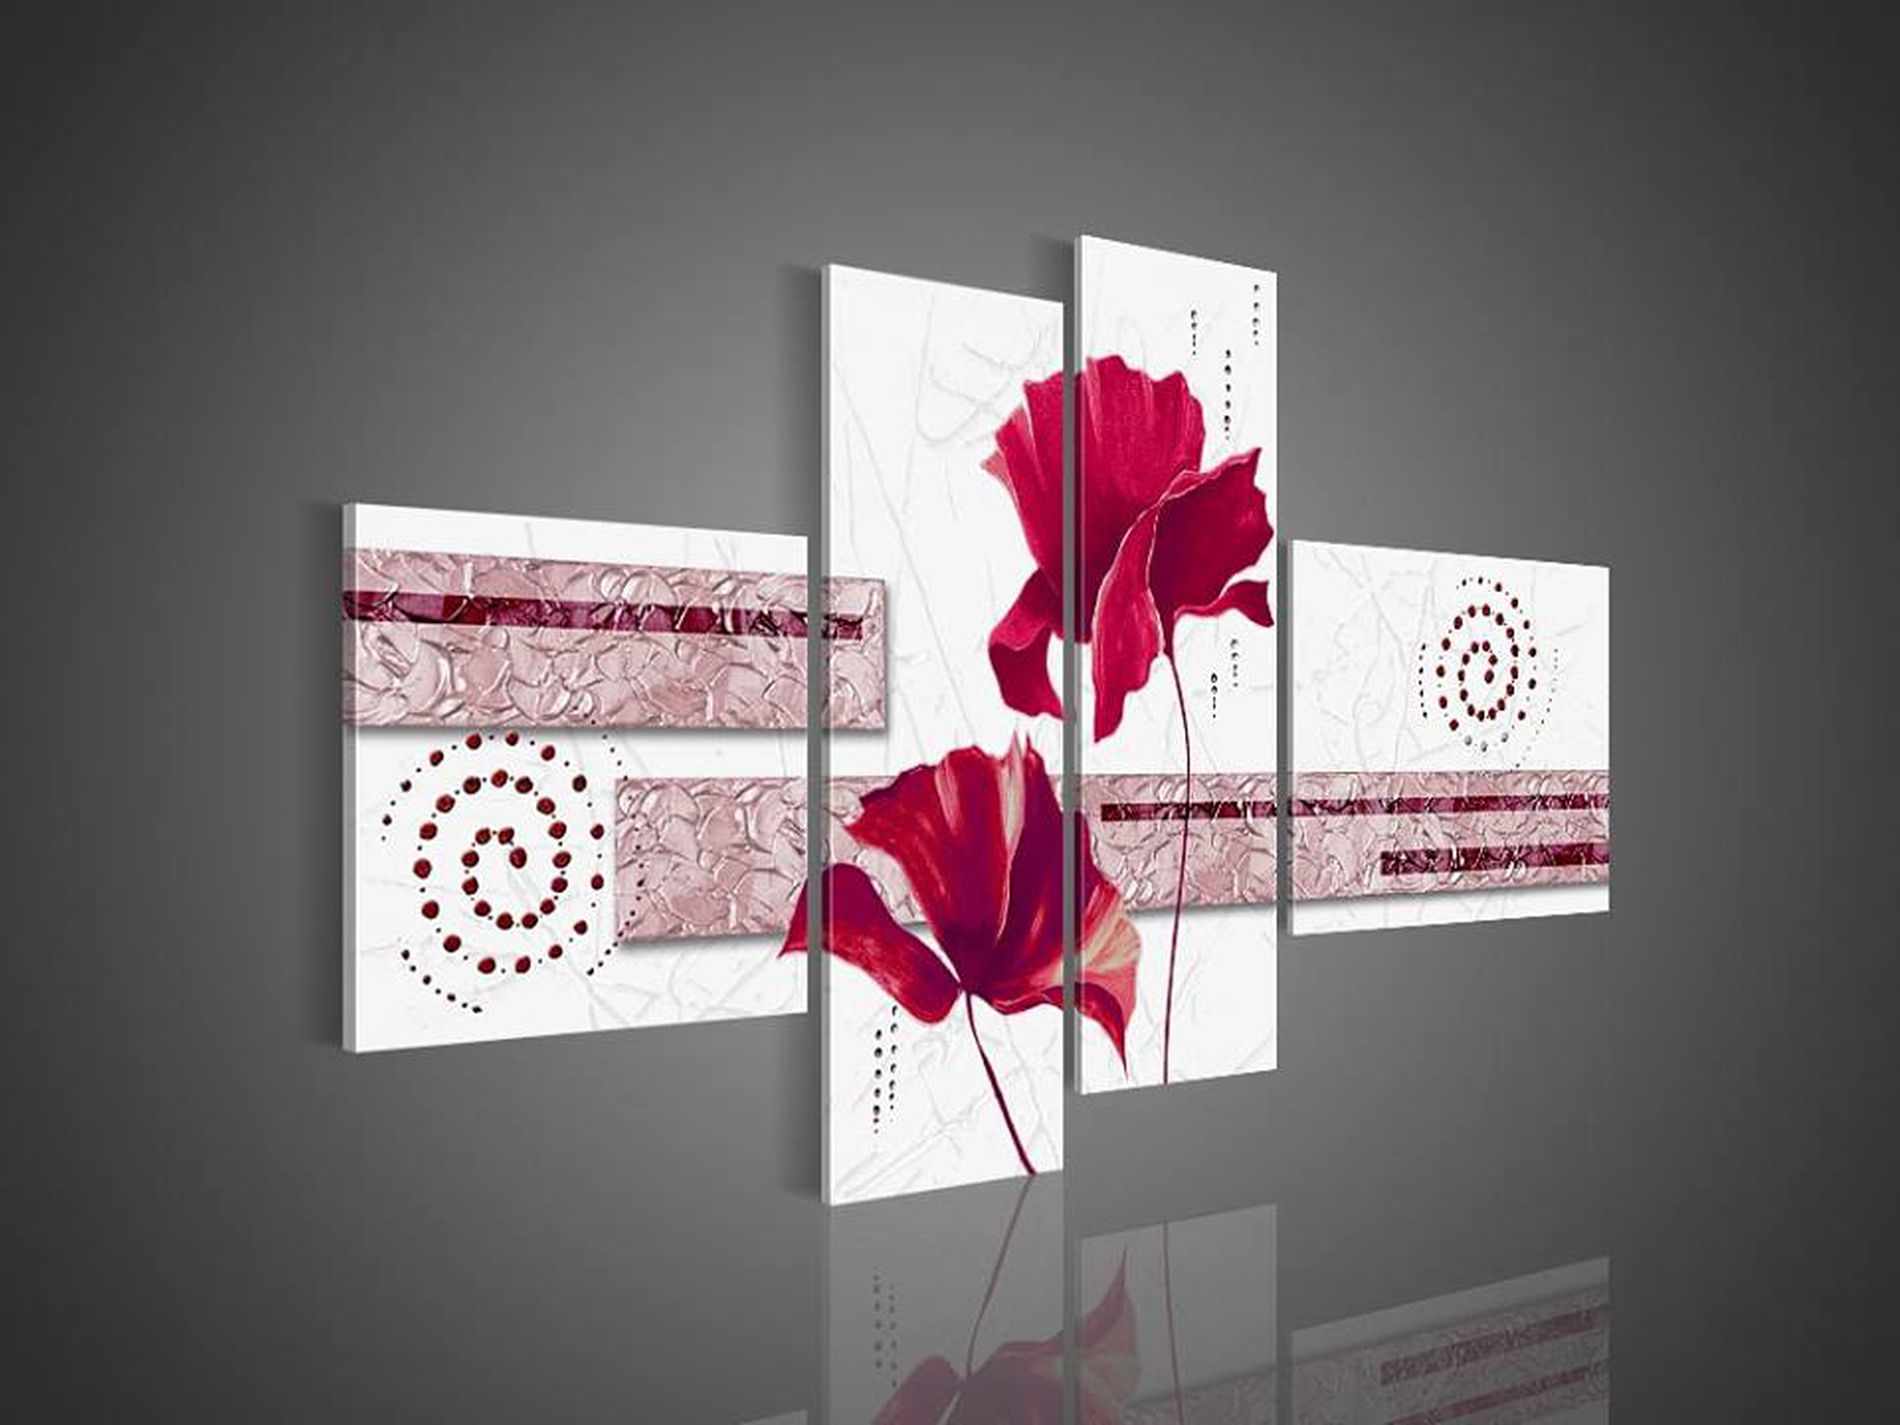 Online Decorative Artwork Business for Sale with Stock